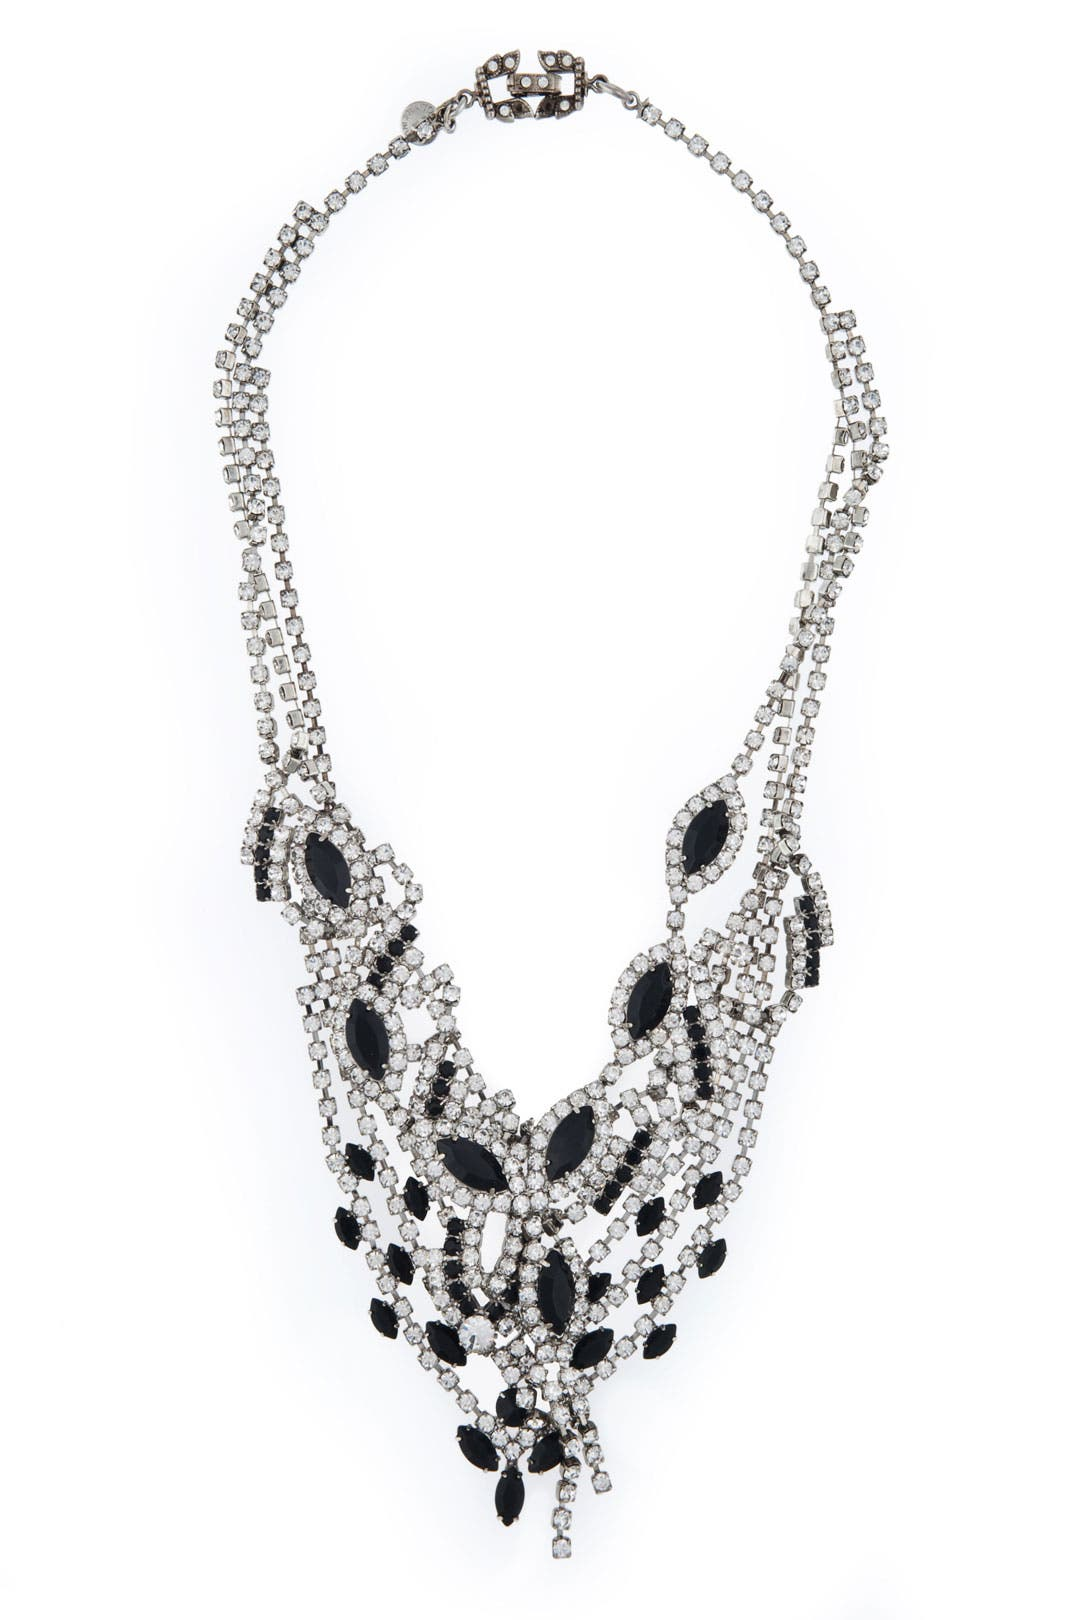 Black and Crystal Mystery Necklace by Tom Binns